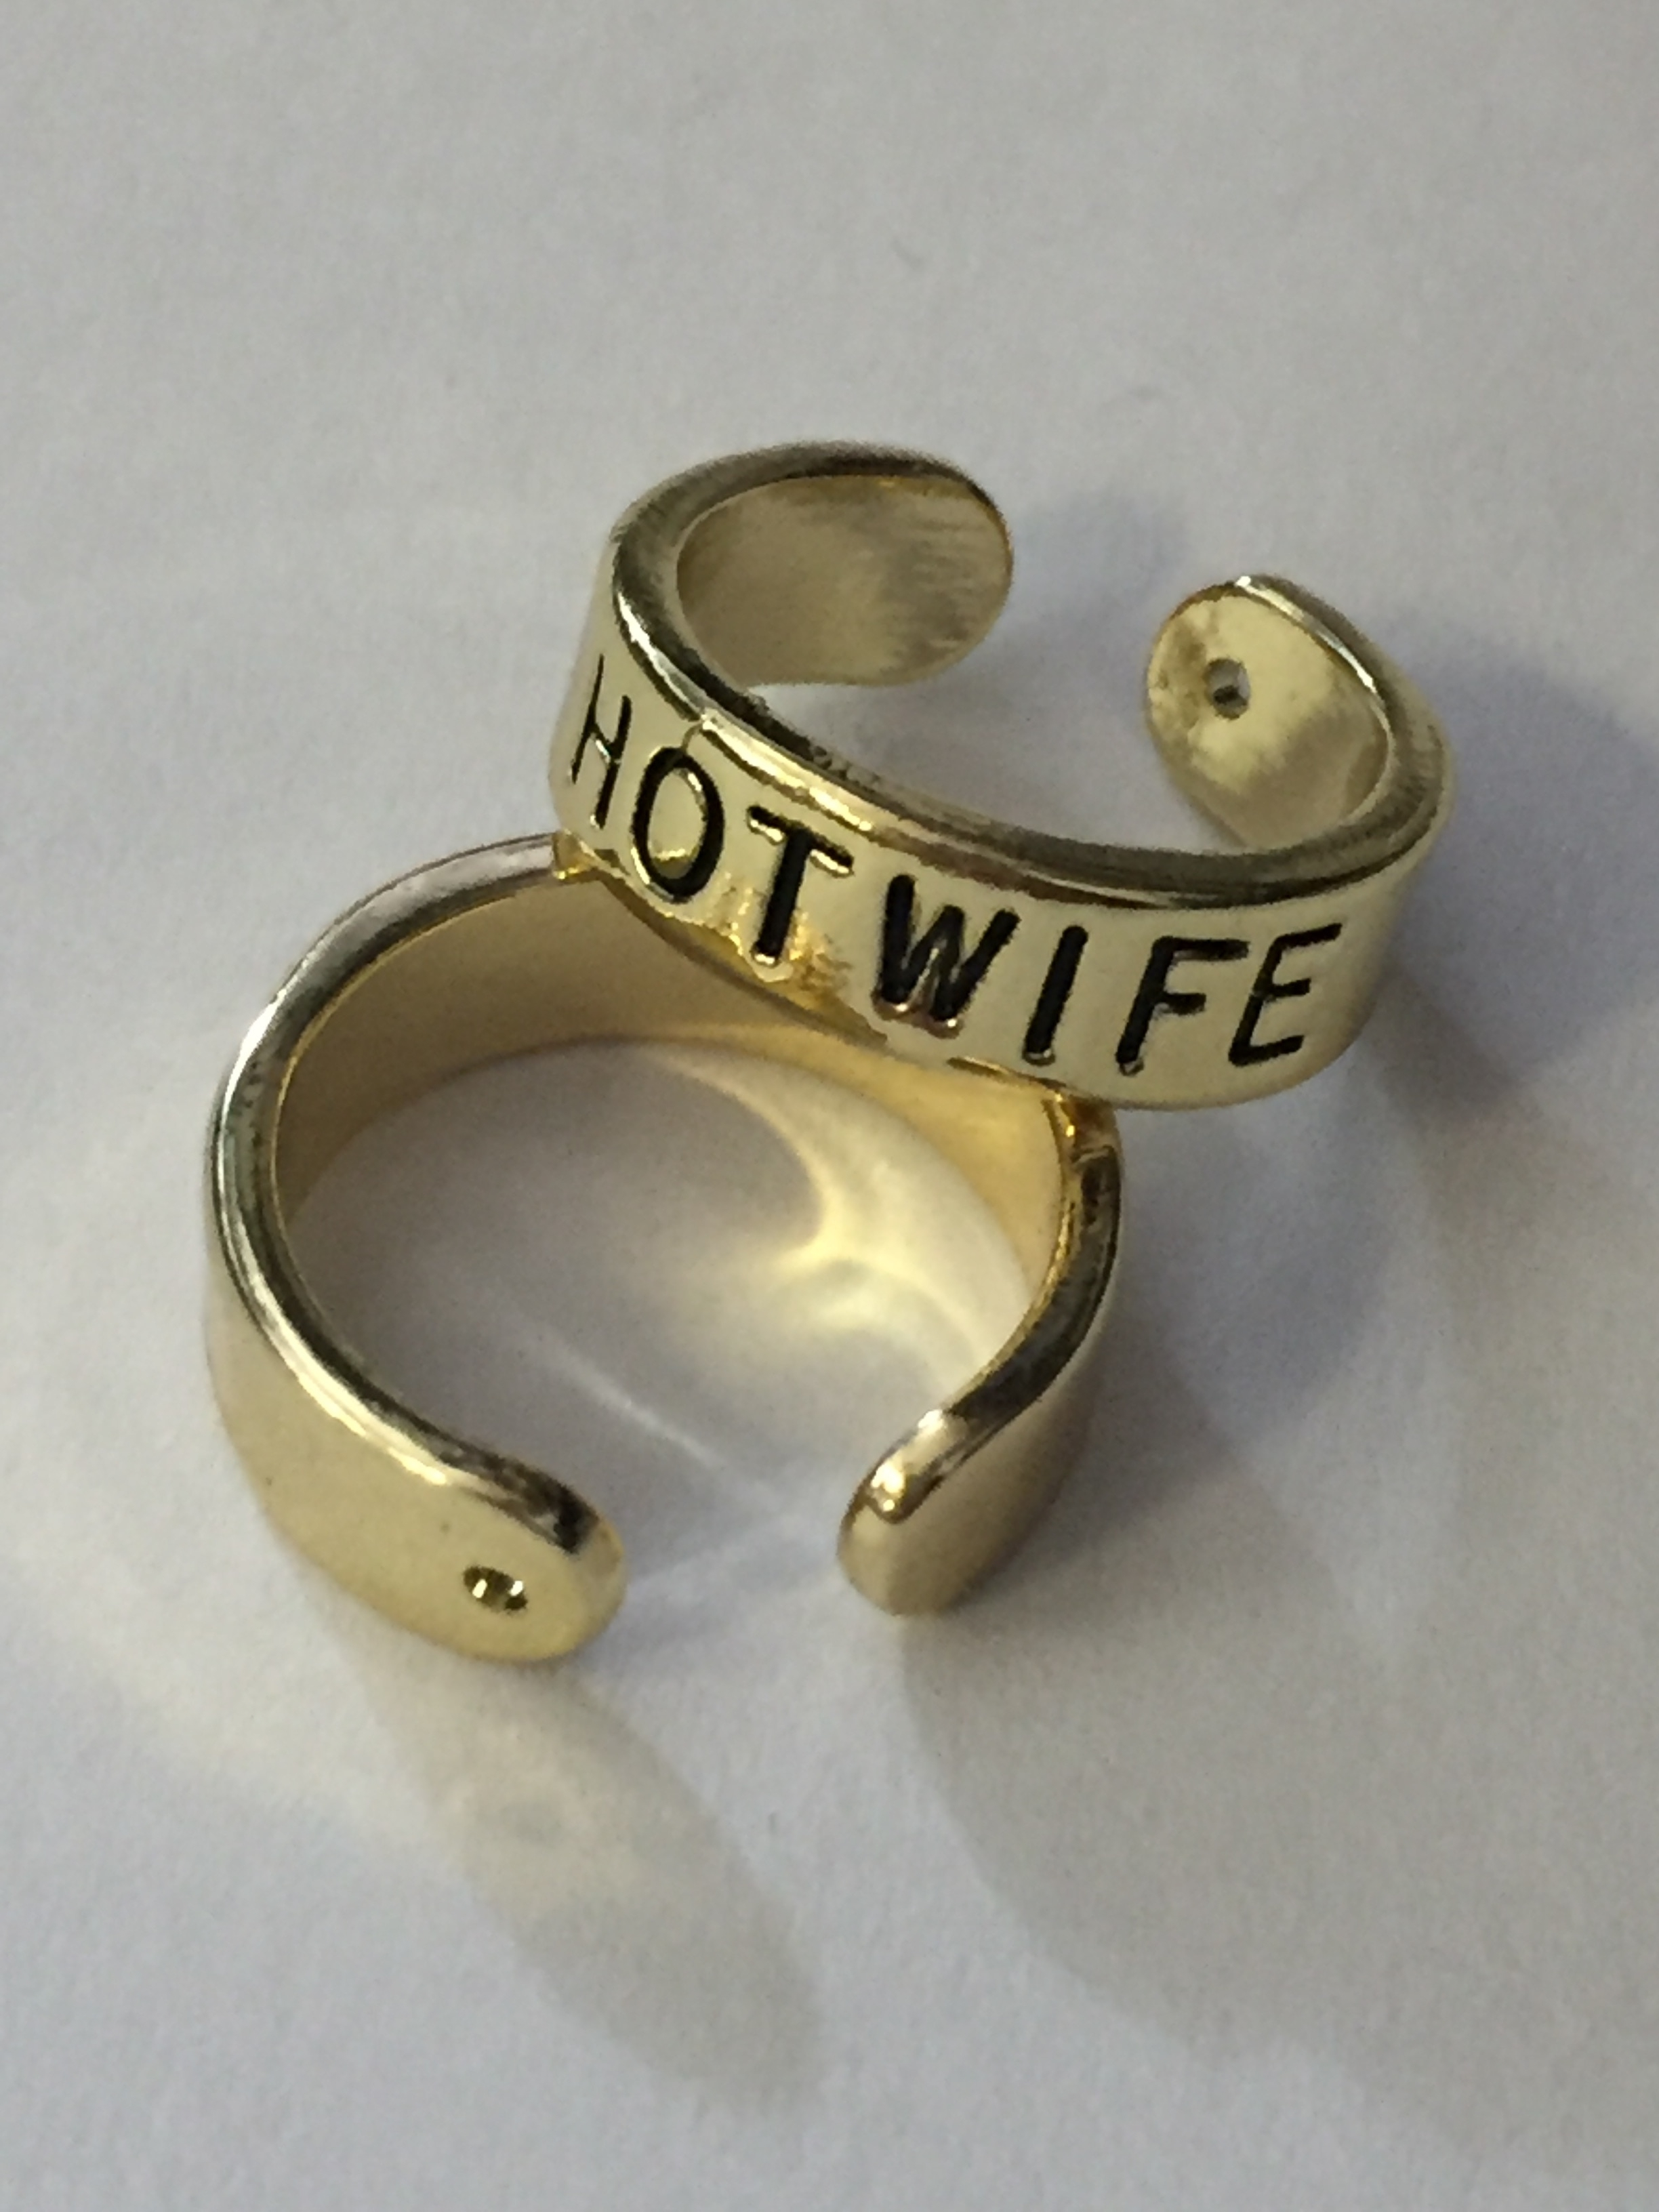 Gold Slut, Whore, Bbc, Hotwife Or Qos Toe Ring, Swinger Jewelry Within Latest Toe Rings With Bells (View 5 of 15)